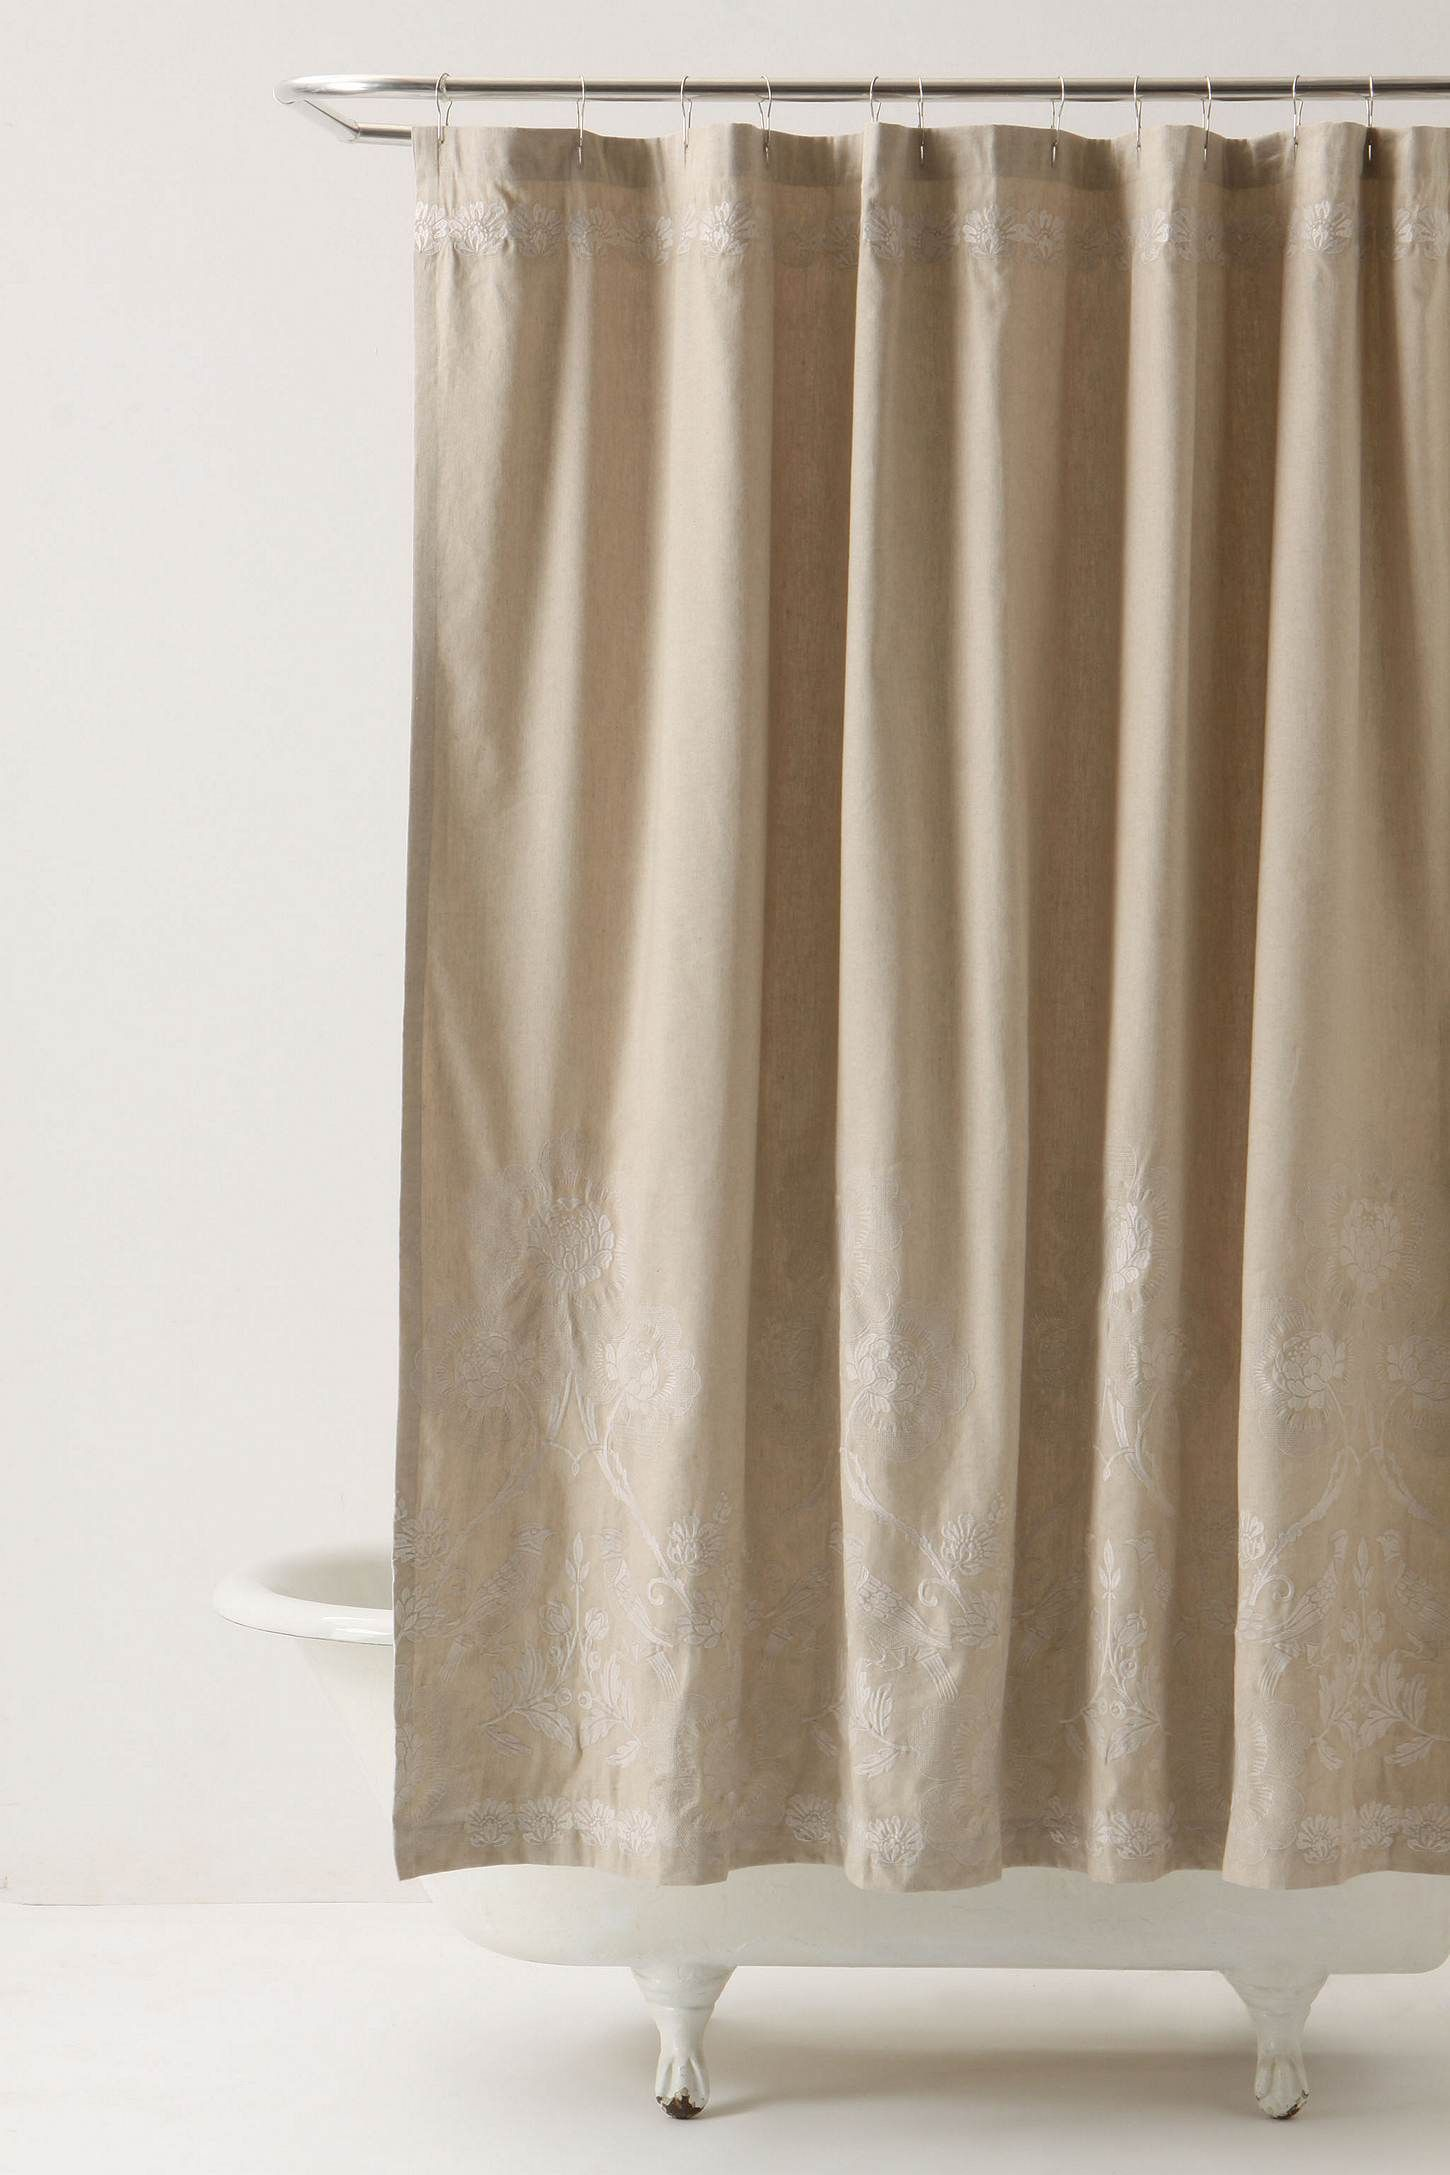 Shower Curtains For Less Looking For One Simple And Elegant Like This For 100 Less For